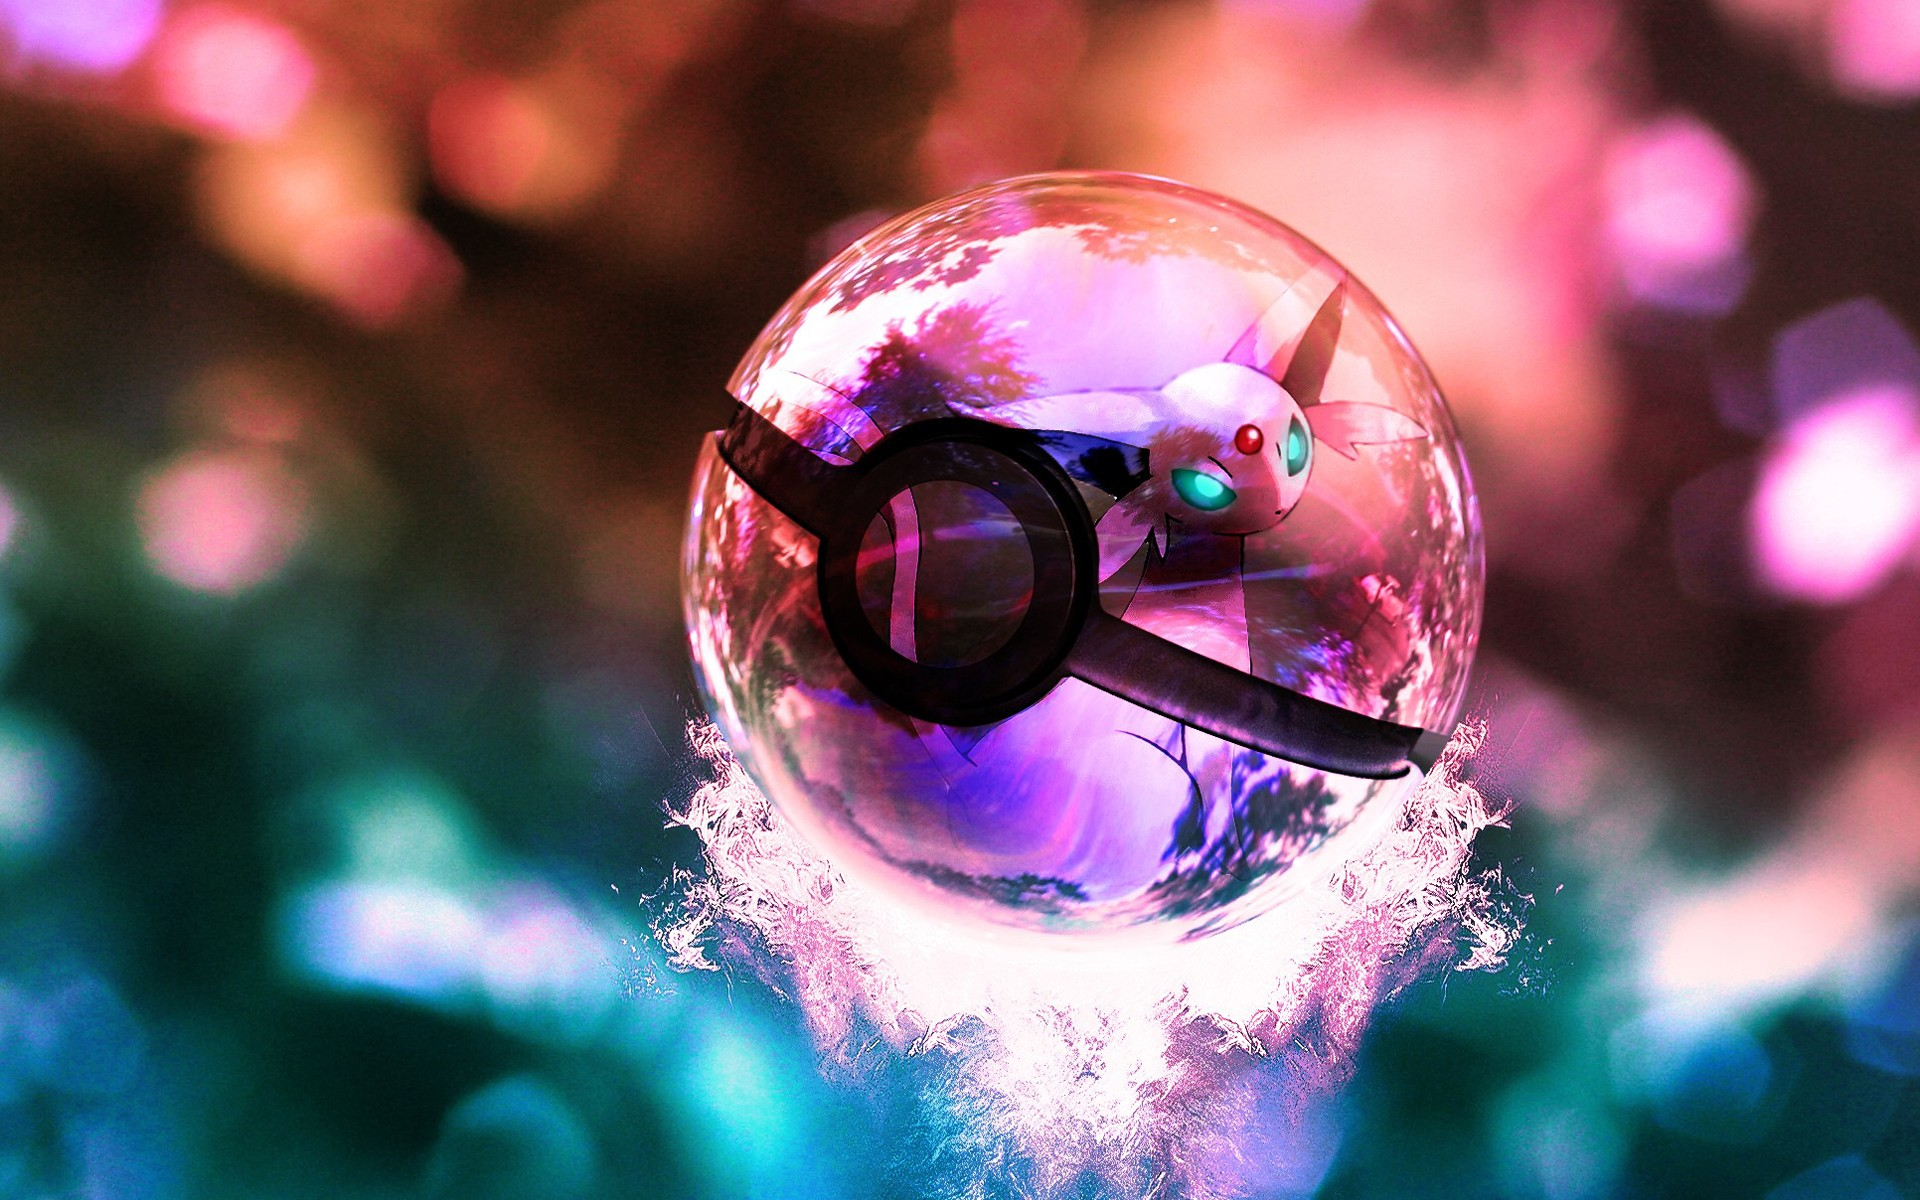 Awesome pokemon backgrounds 18261 1920x1200 px for Awesome desktop